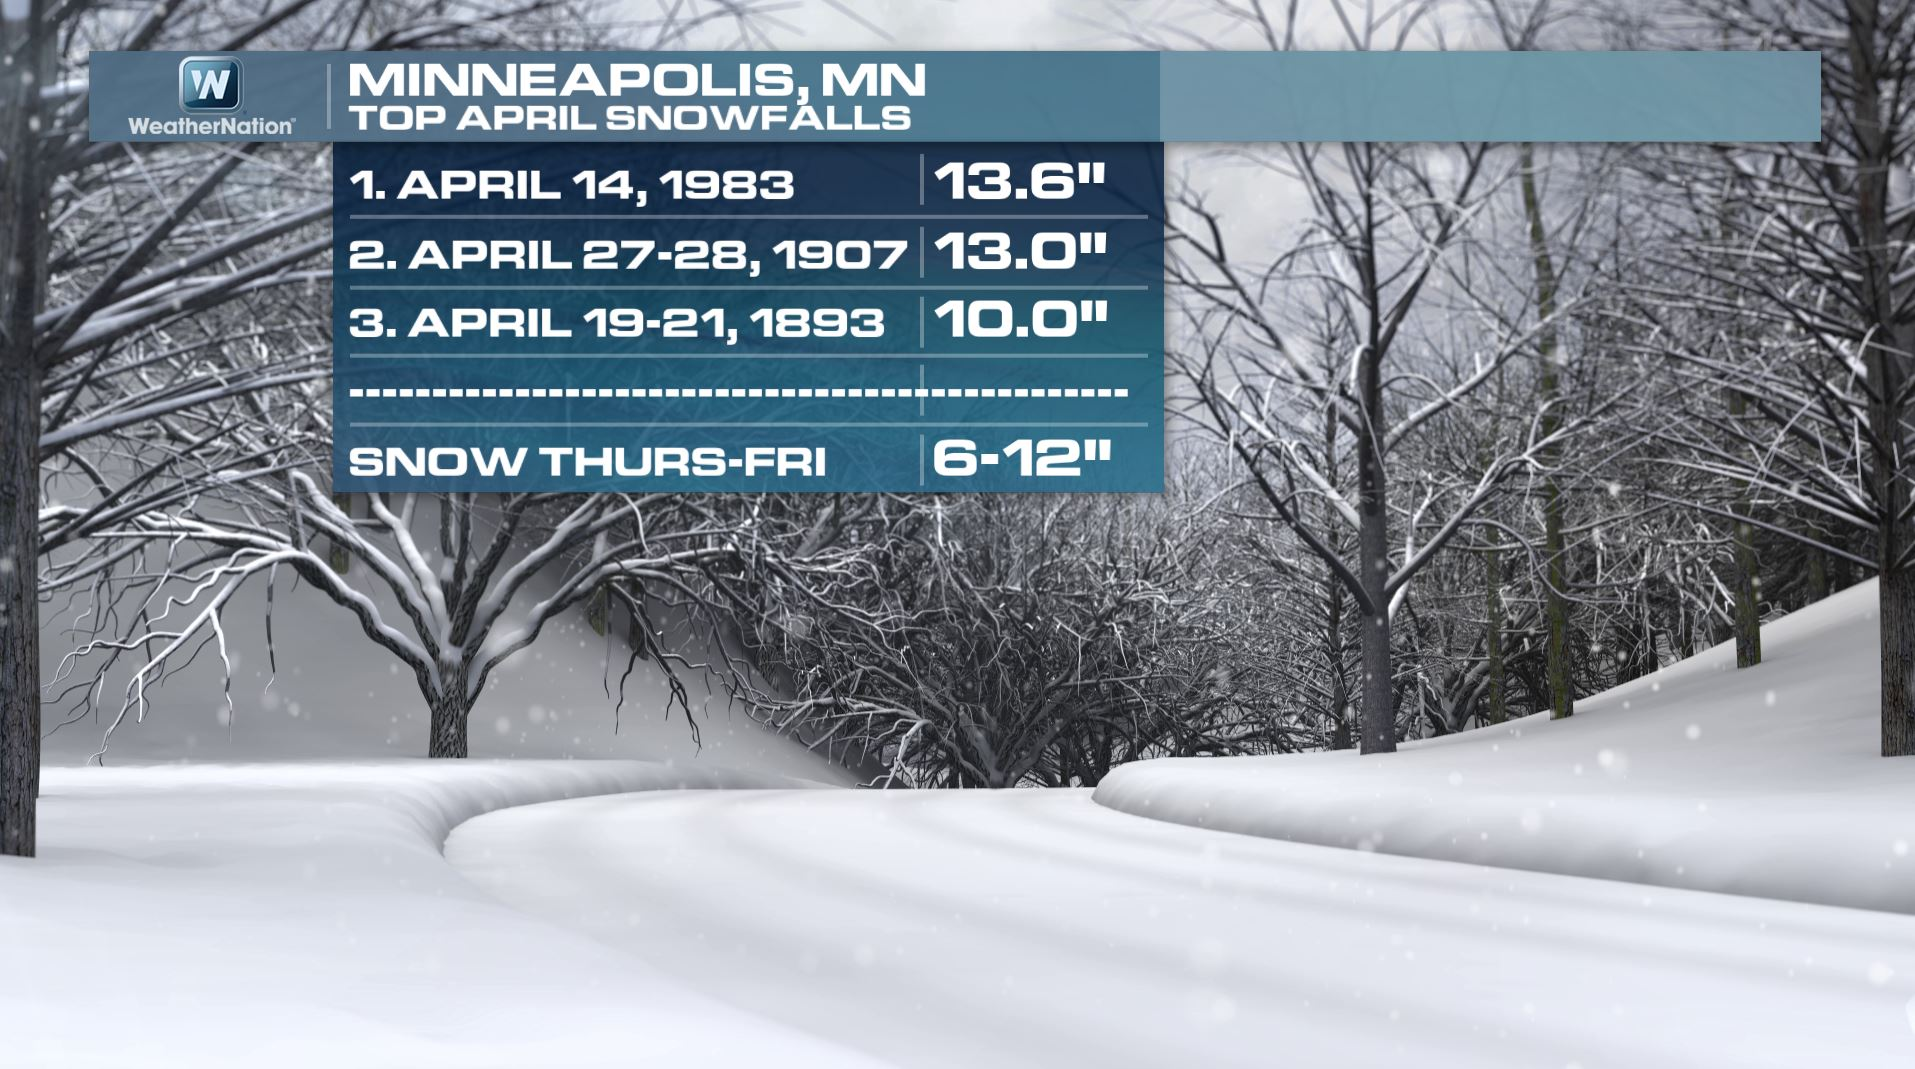 Average temperatures minneapolis - The Temperature Trend For Minneapolis Through Mid April Appears To Be Consistently Staying Below Average We May Sneak Up Close To 60 Again By Next Week